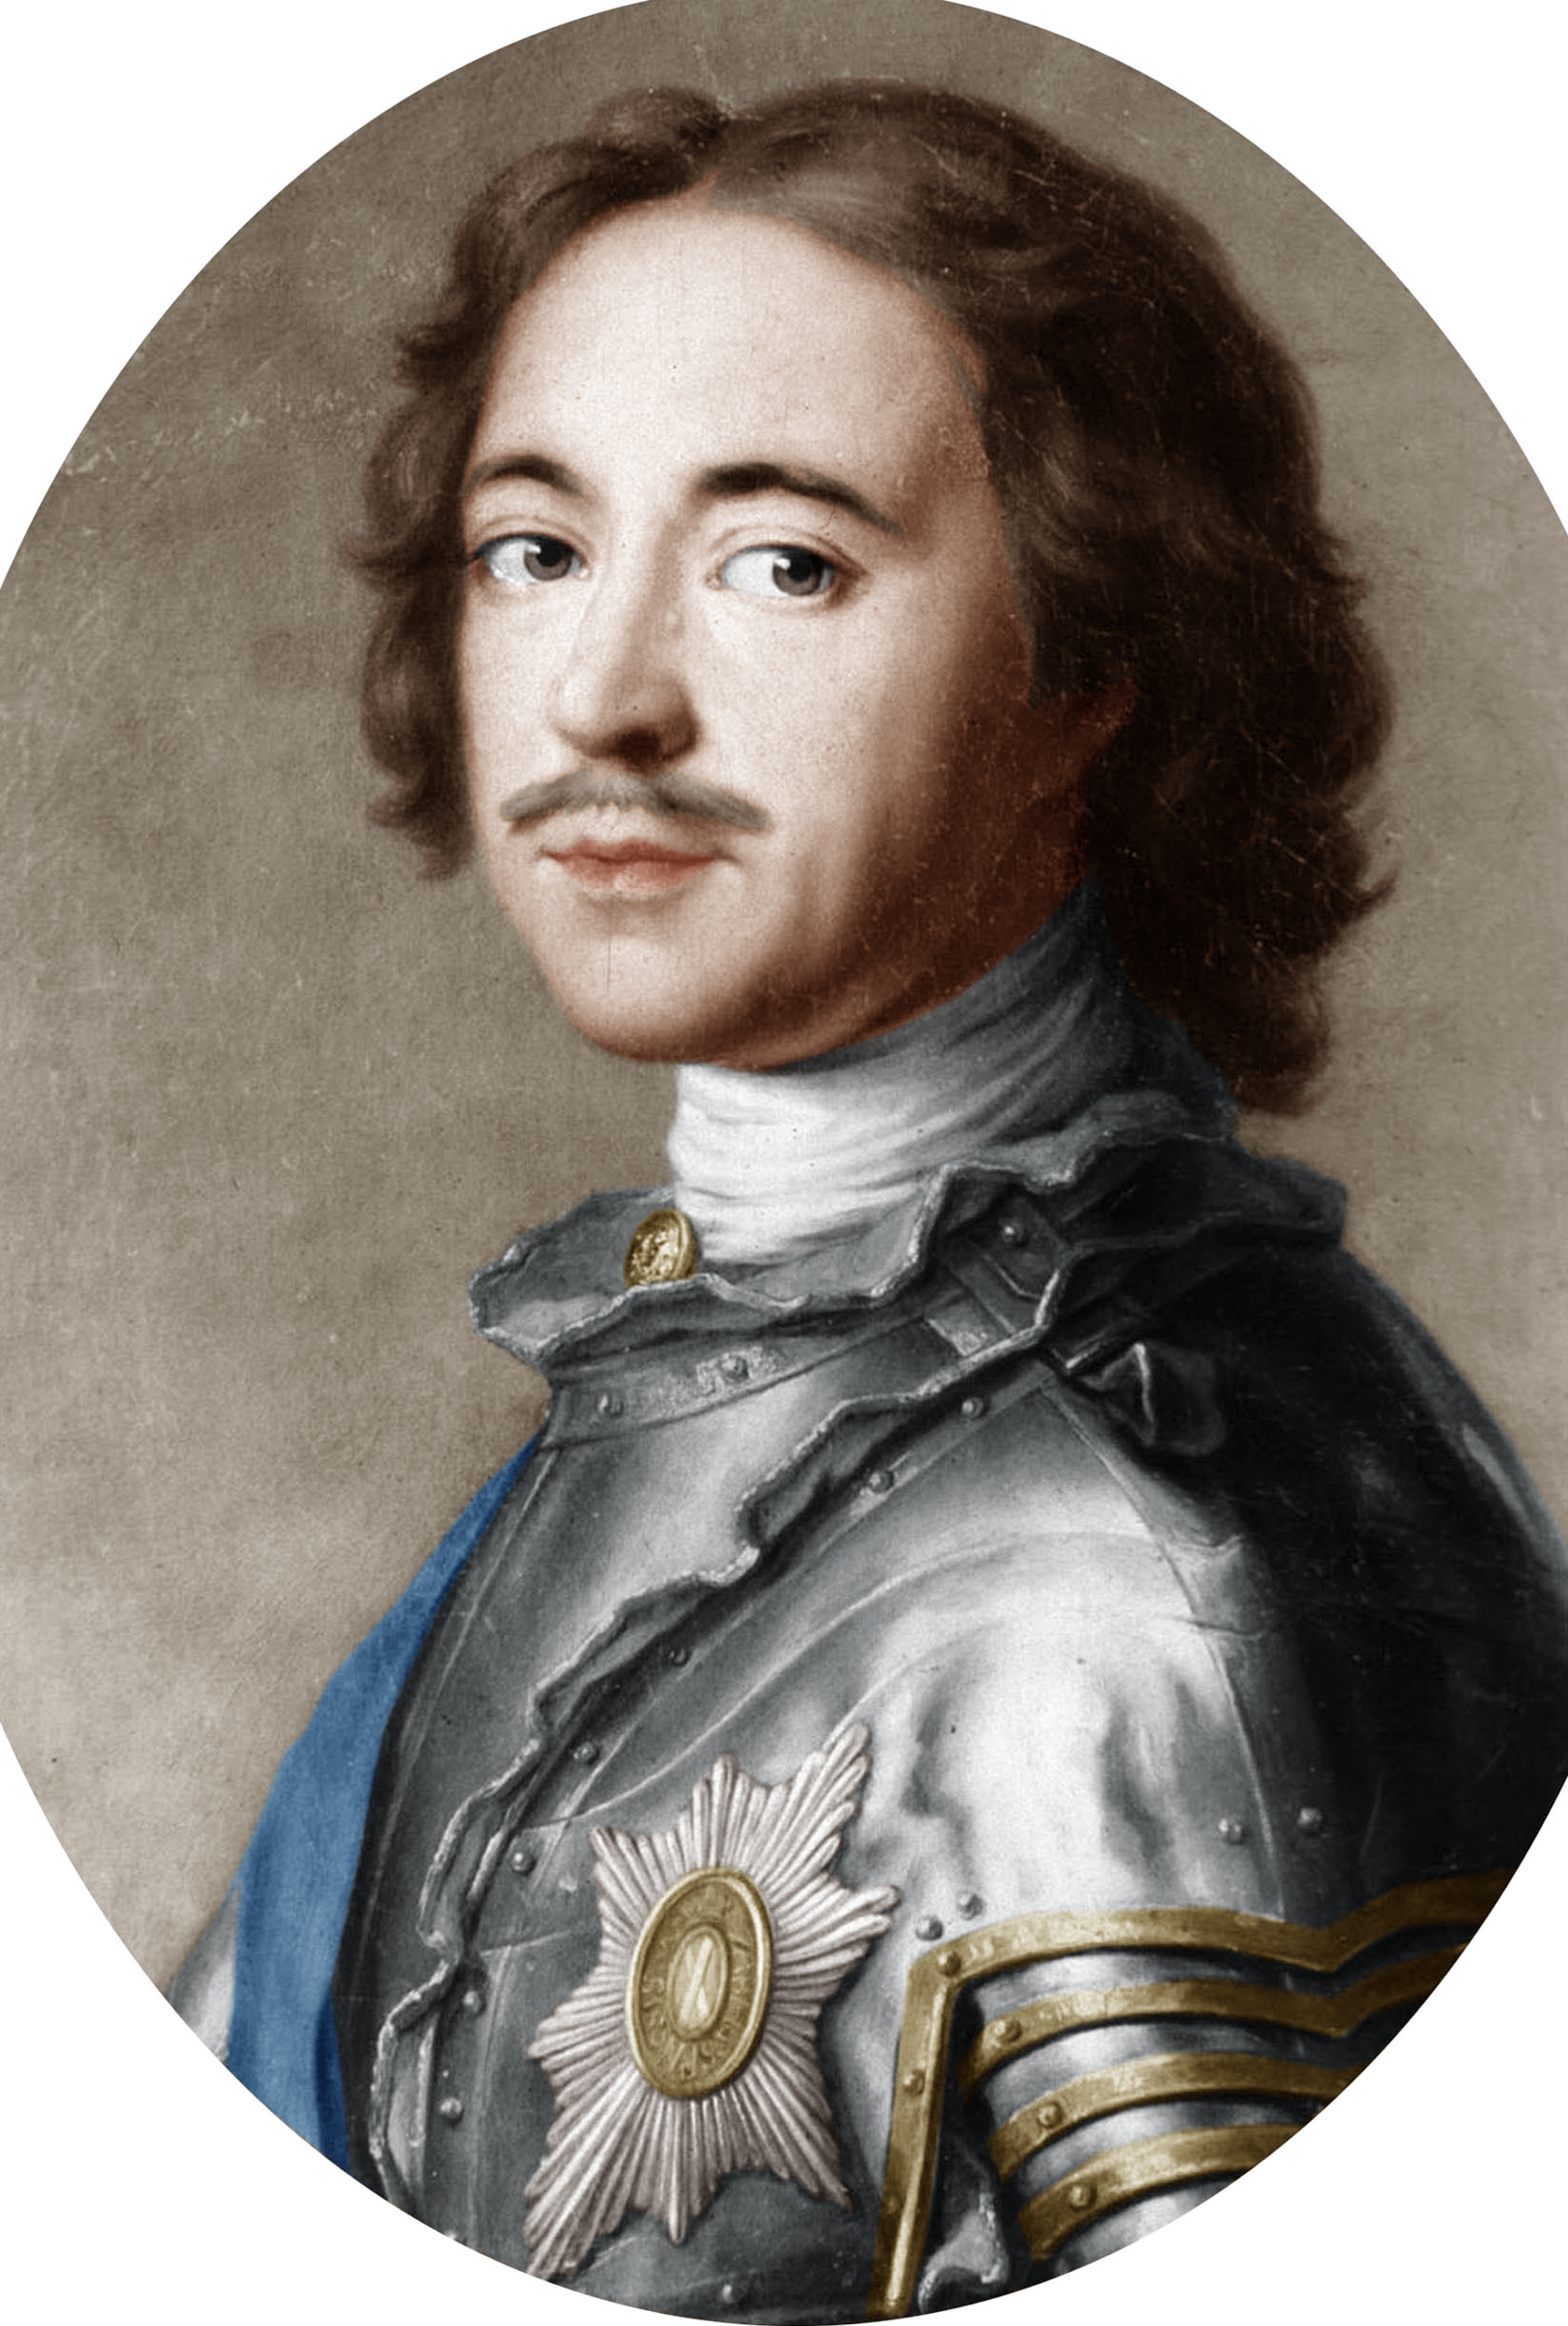 a biography of peter the great the czar of russia Peter the great biography: tsar/tsarina of russia (1672–1725) peter the great was a russian czar in the late 17th century, who is best known for his extensive reforms in an attempt to establish russia as a great nation.